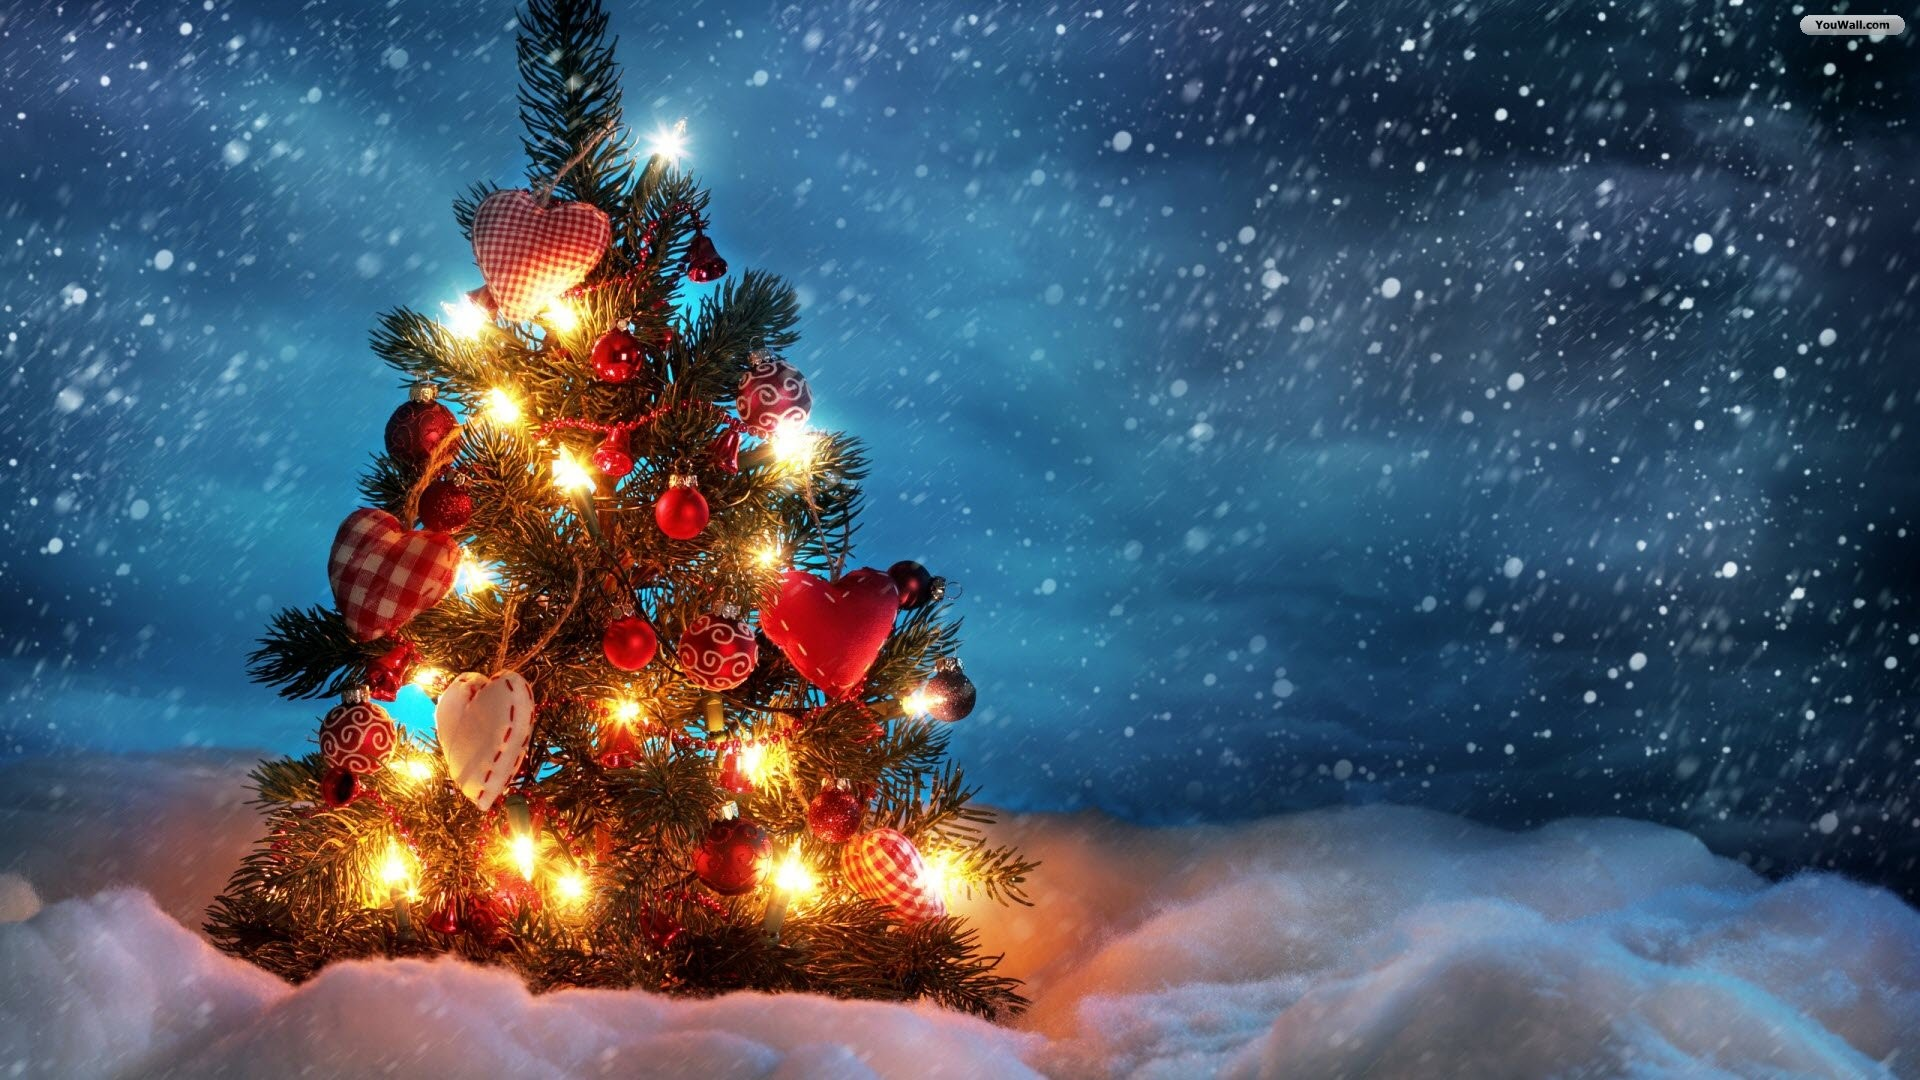 1920x1080 Explore Christmas Tree Wallpaper, Xmas Tree, and more!